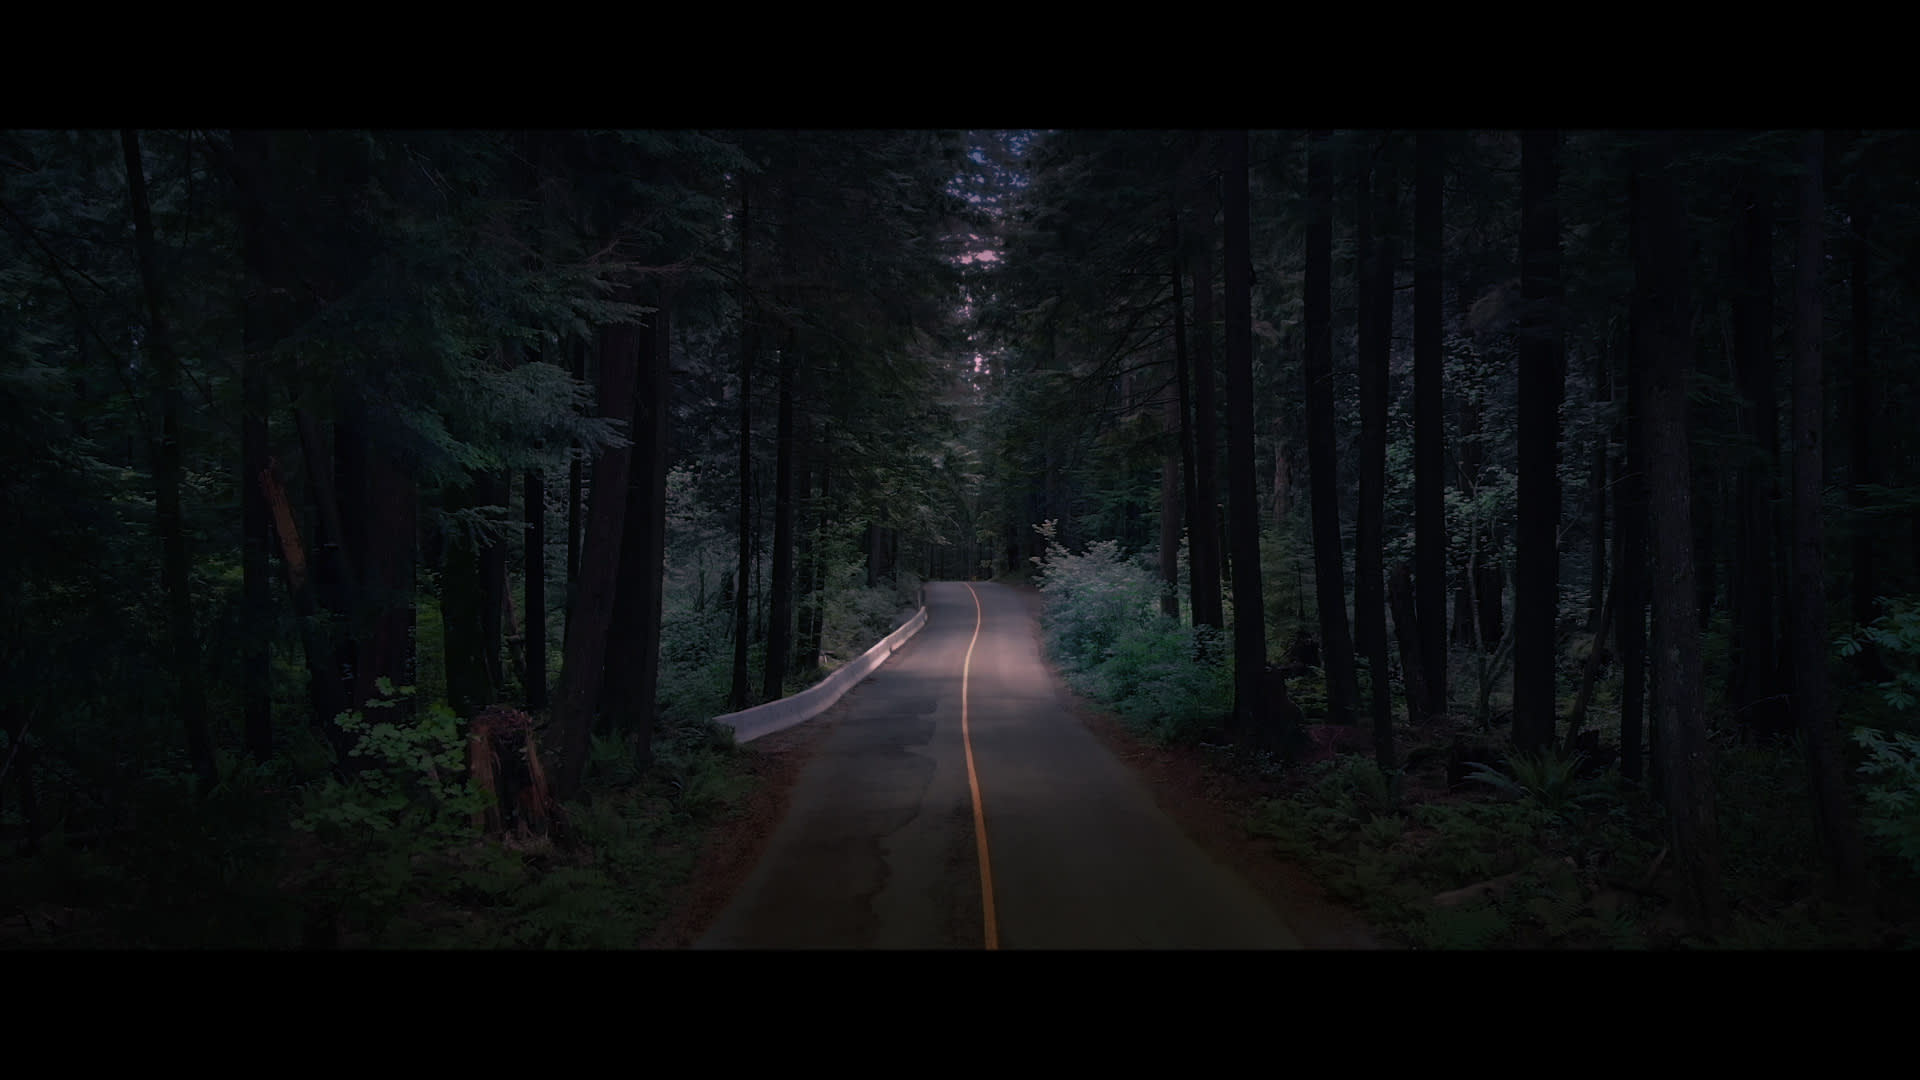 Night scene in a forest with a yellow road line down the middle of it. One spot of the road is highlighted by light.